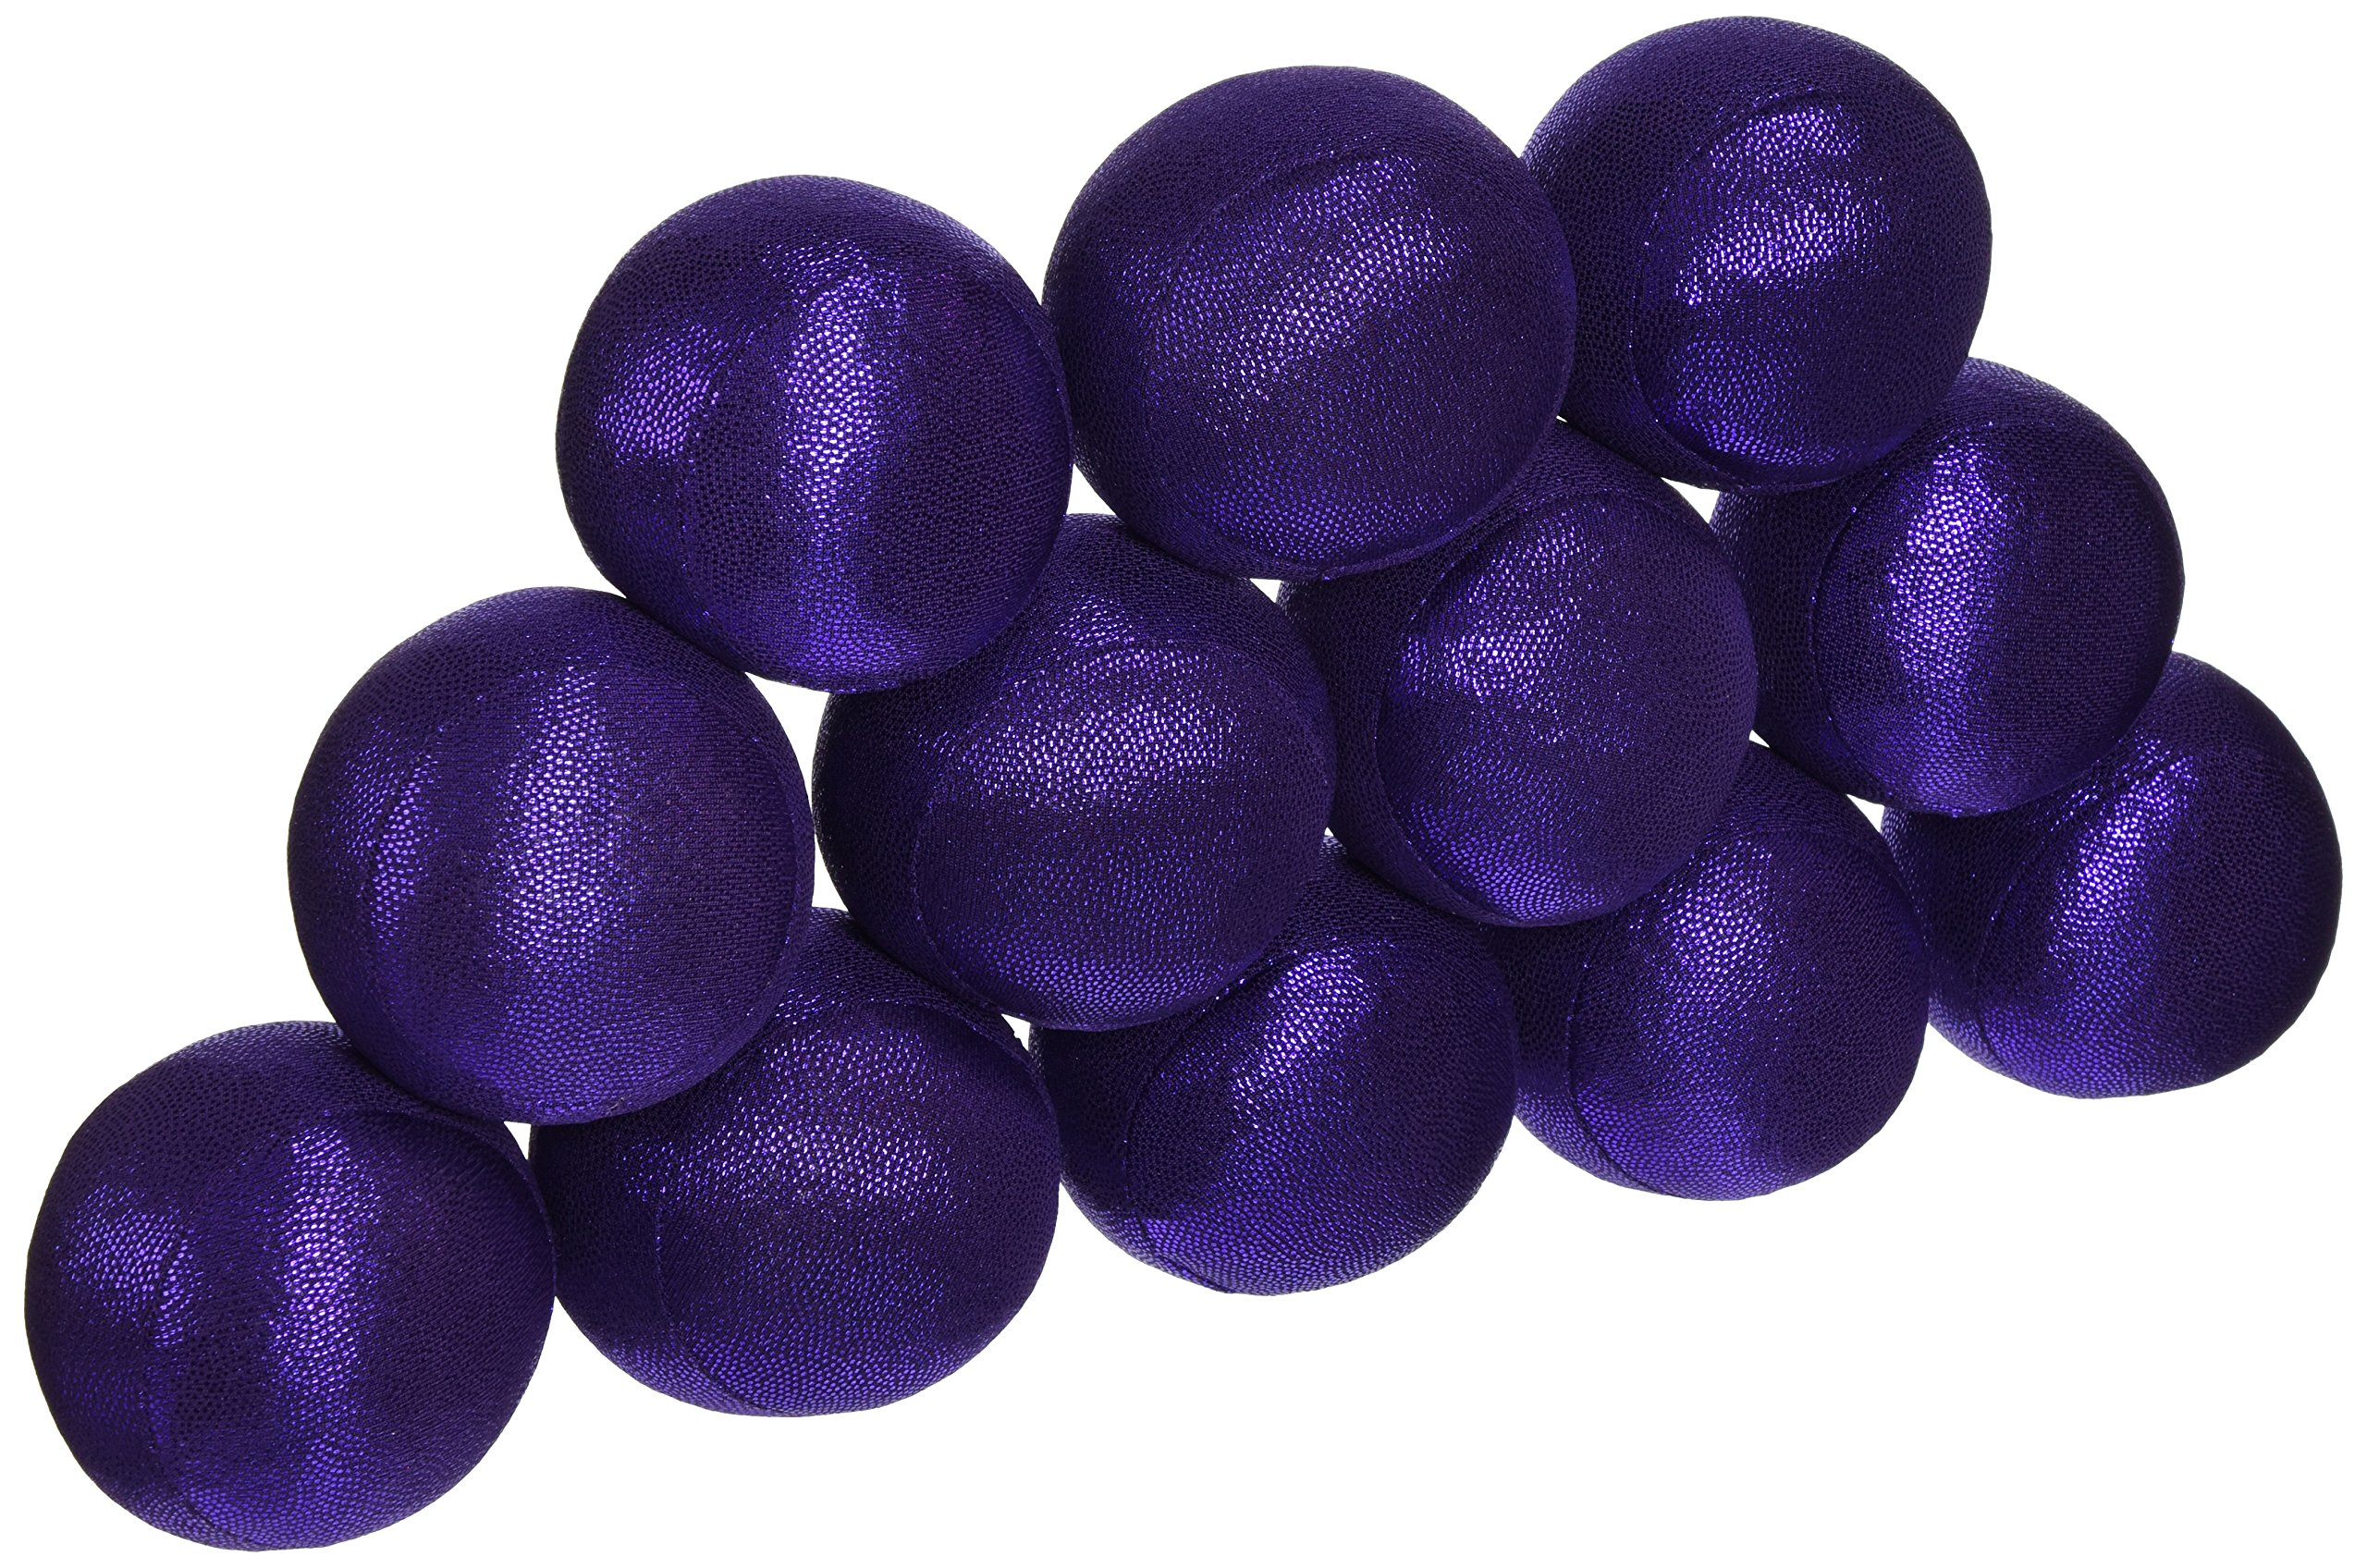 Lavender Luvies Lavender Stress Balls, Purple Sparkle - 12 Pack by Lavender Luvies (Image #1)